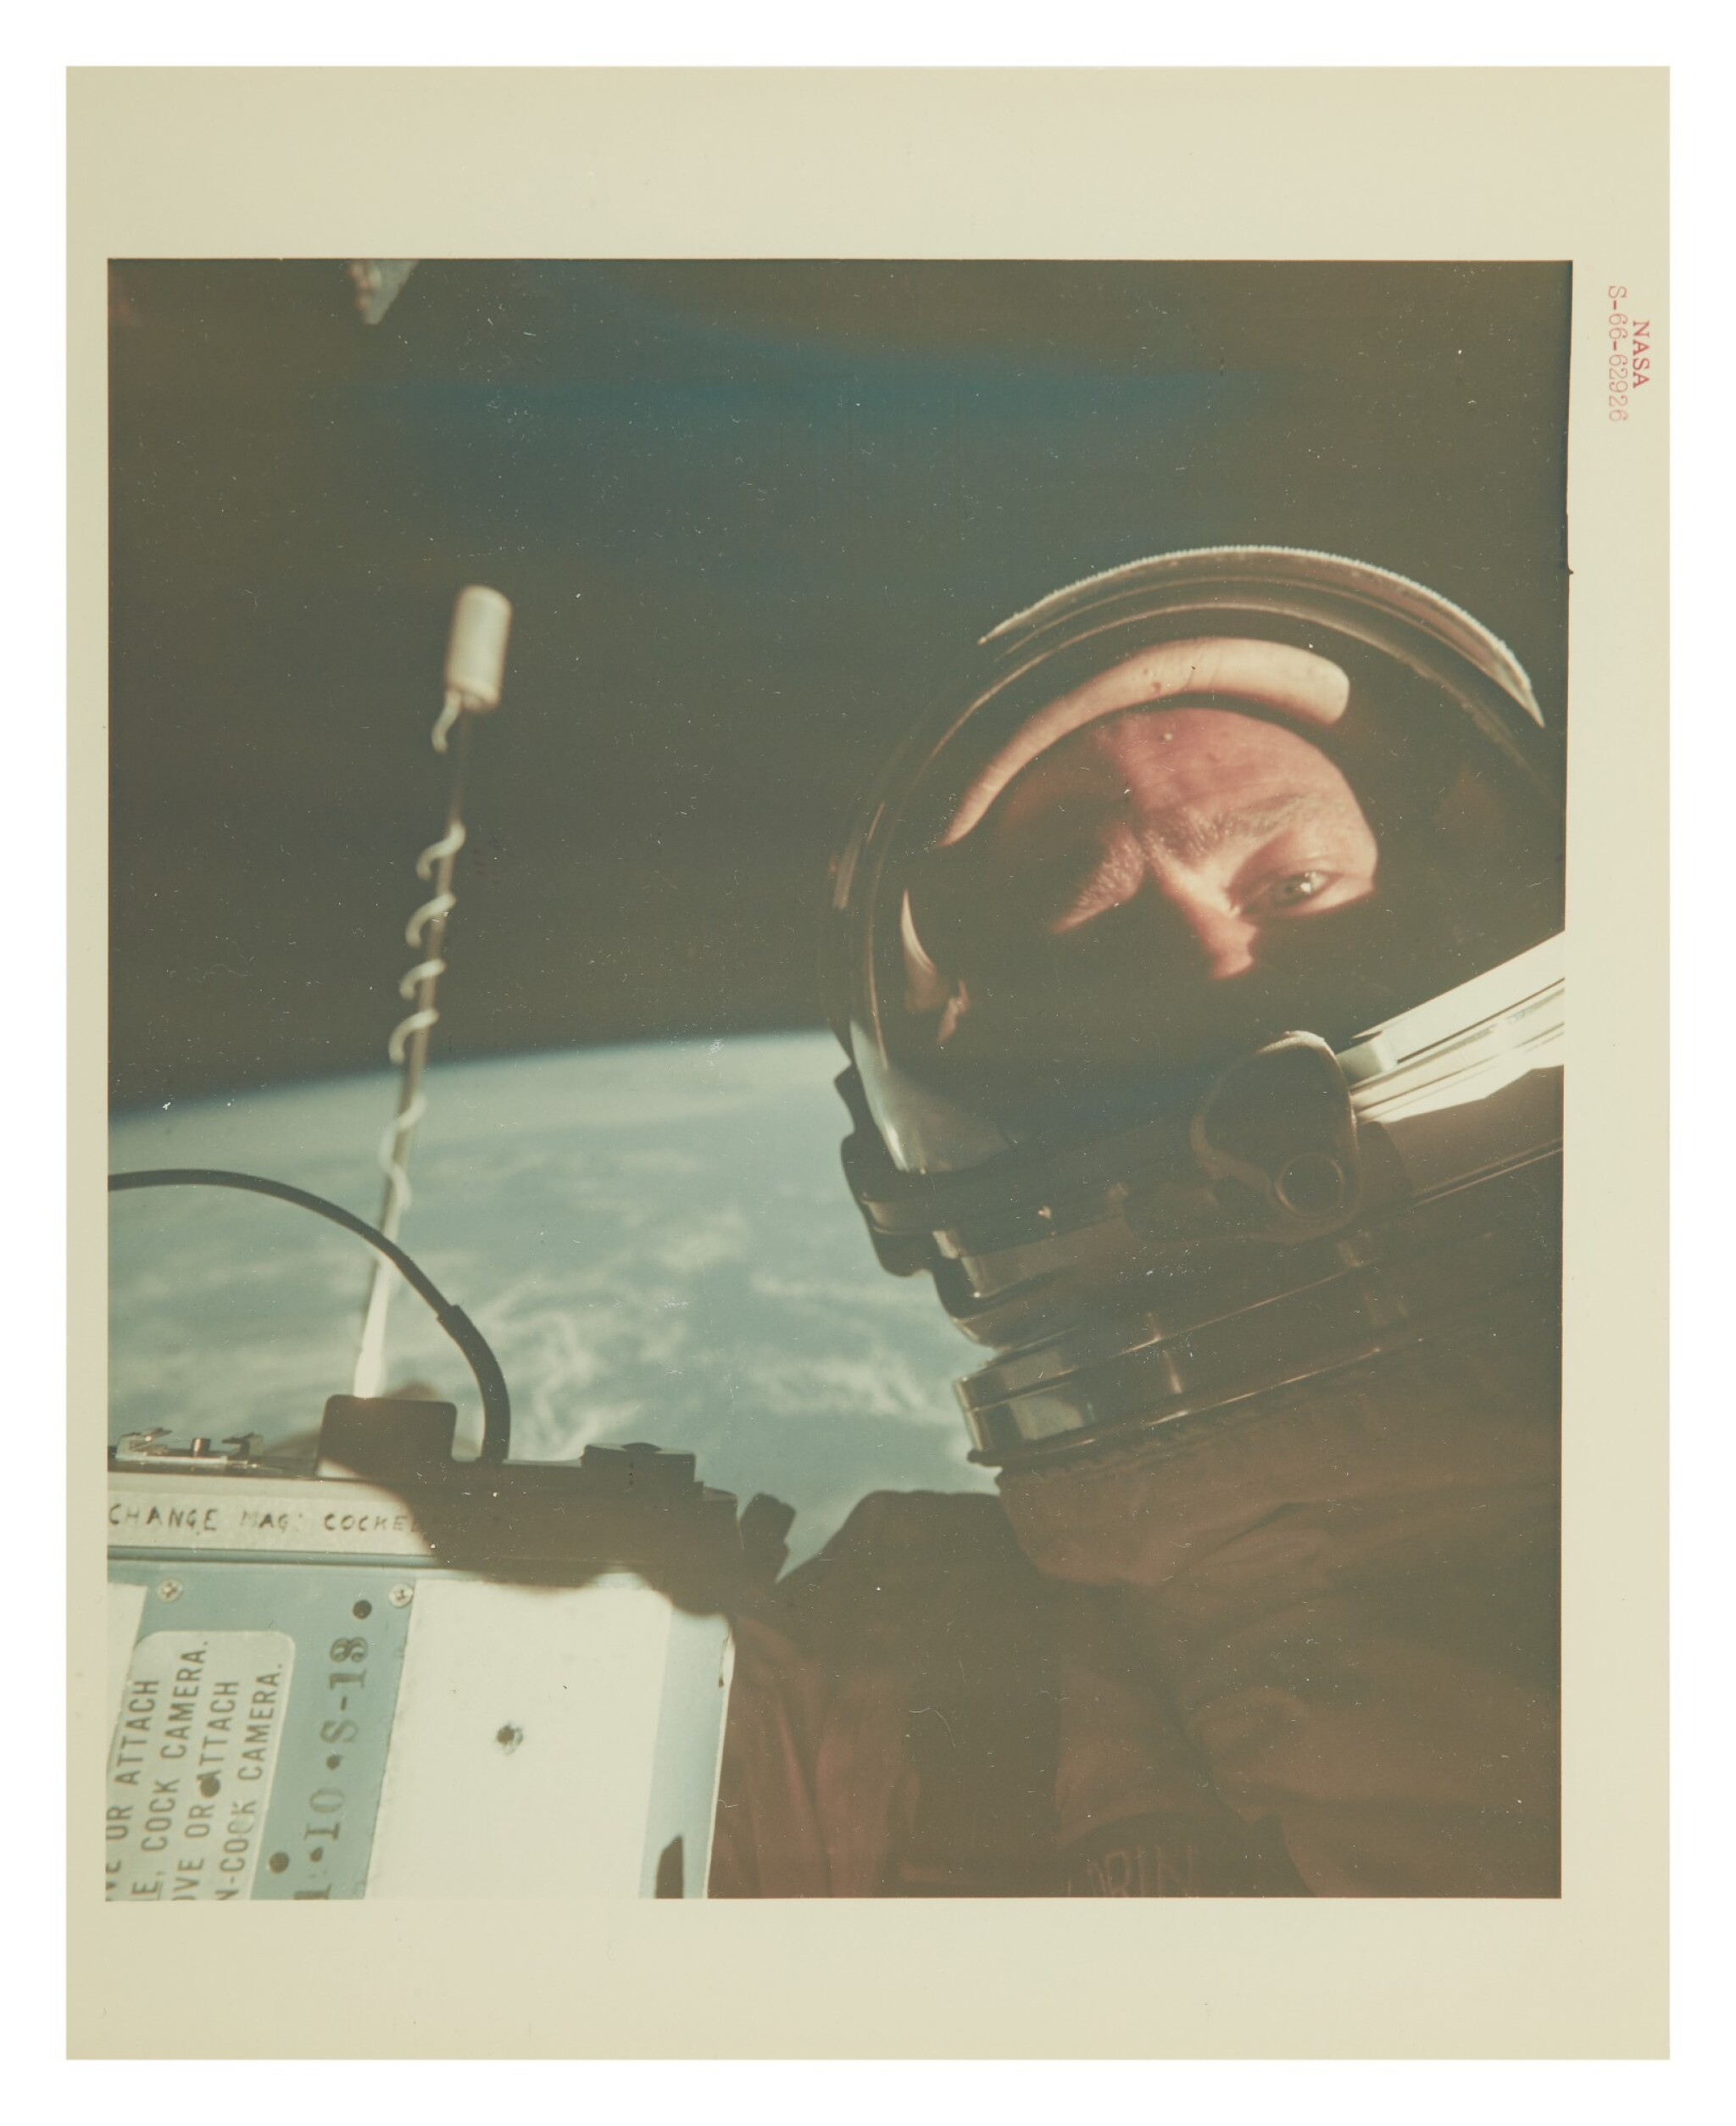 """View 1 of Lot 54. [GEMINI XII] BUZZ ALDRIN IN THE FIRST SPACE SELFIE. VINTAGE NASA """"RED NUMBER"""" PHOTOGRAPH, 12 NOVEMBER 1966.."""